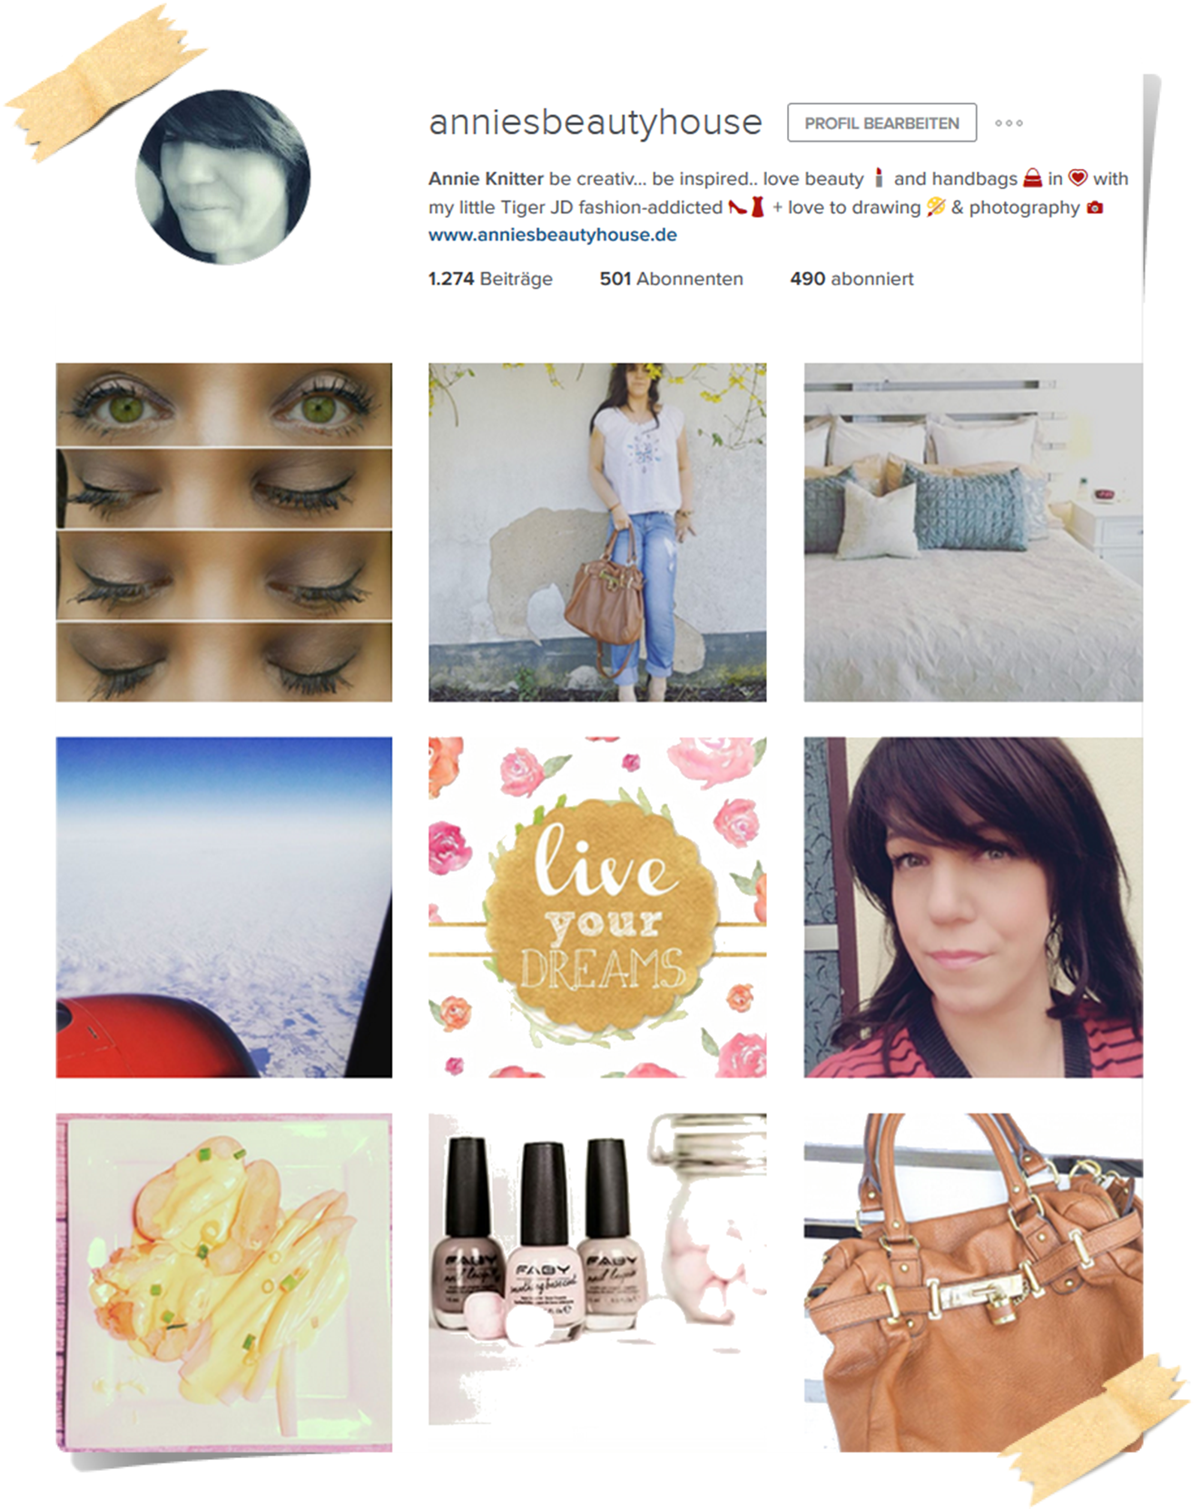 Monthly Instagram Review - Profile and last pictures on instagram